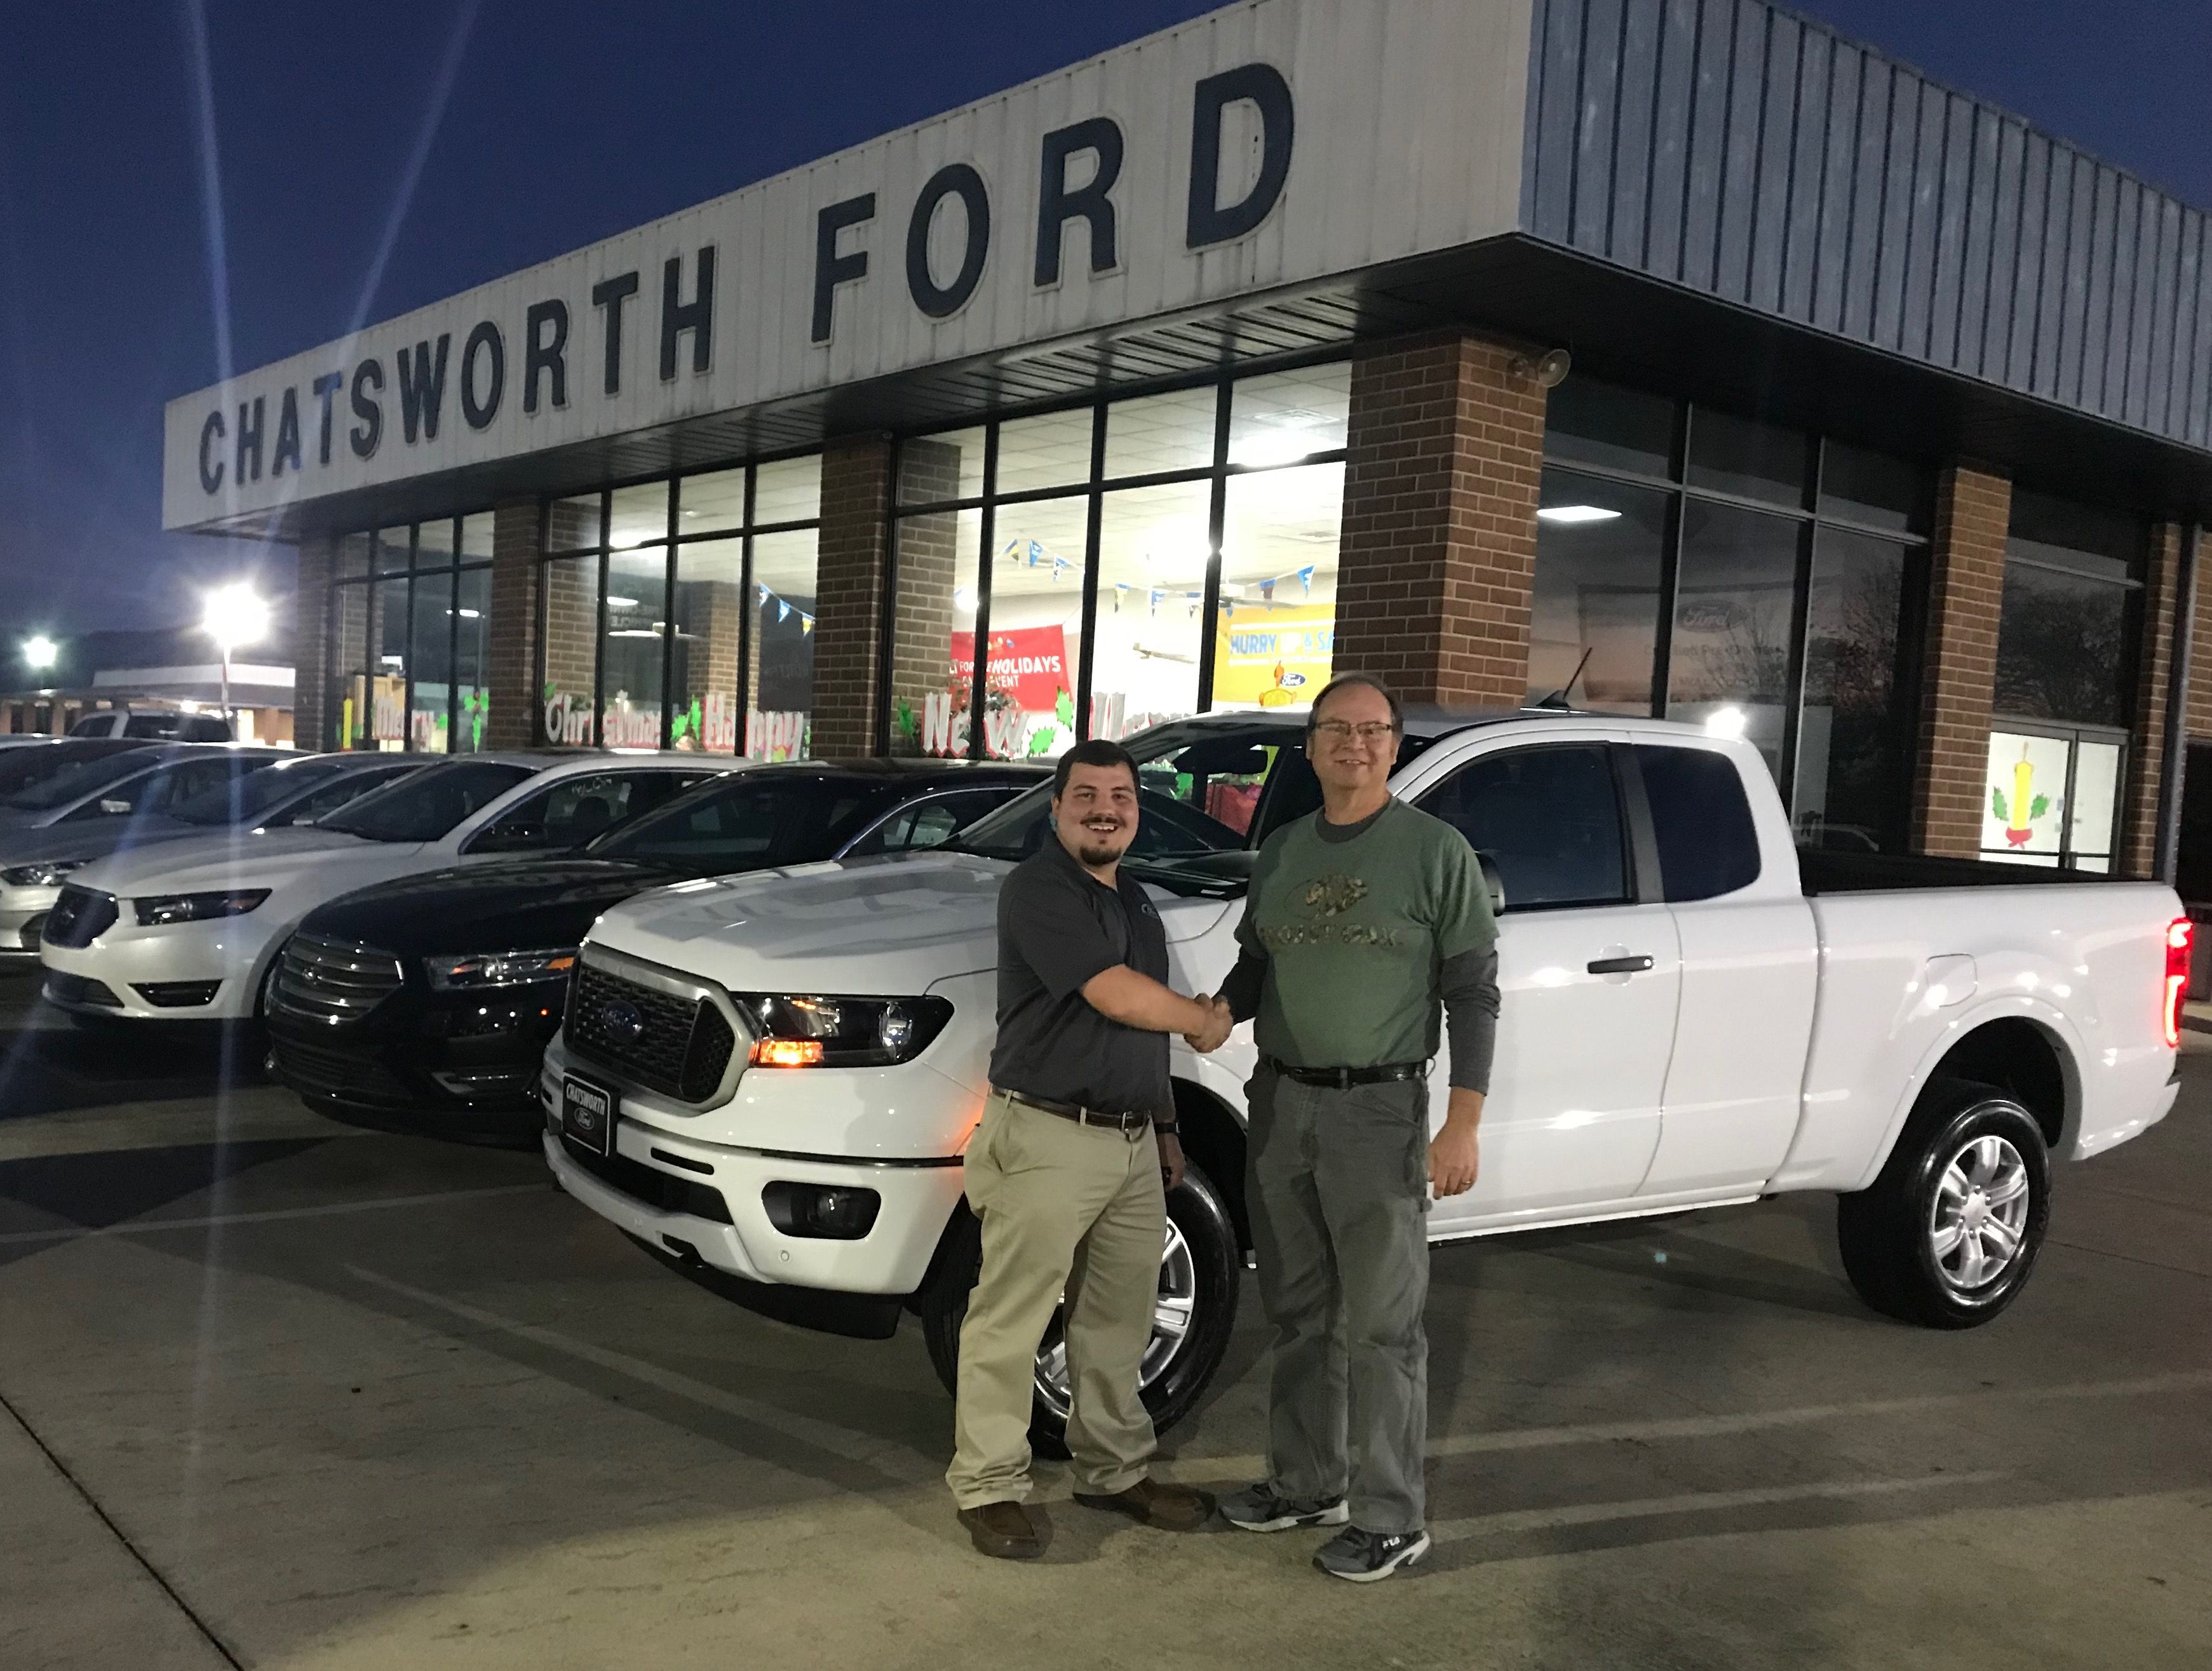 congratulations davey silvers of chatsworth ga on your new 2019 ranger sold by jared langham we know you re going to love it ford news chatsworth 2019 ranger ford news chatsworth 2019 ranger